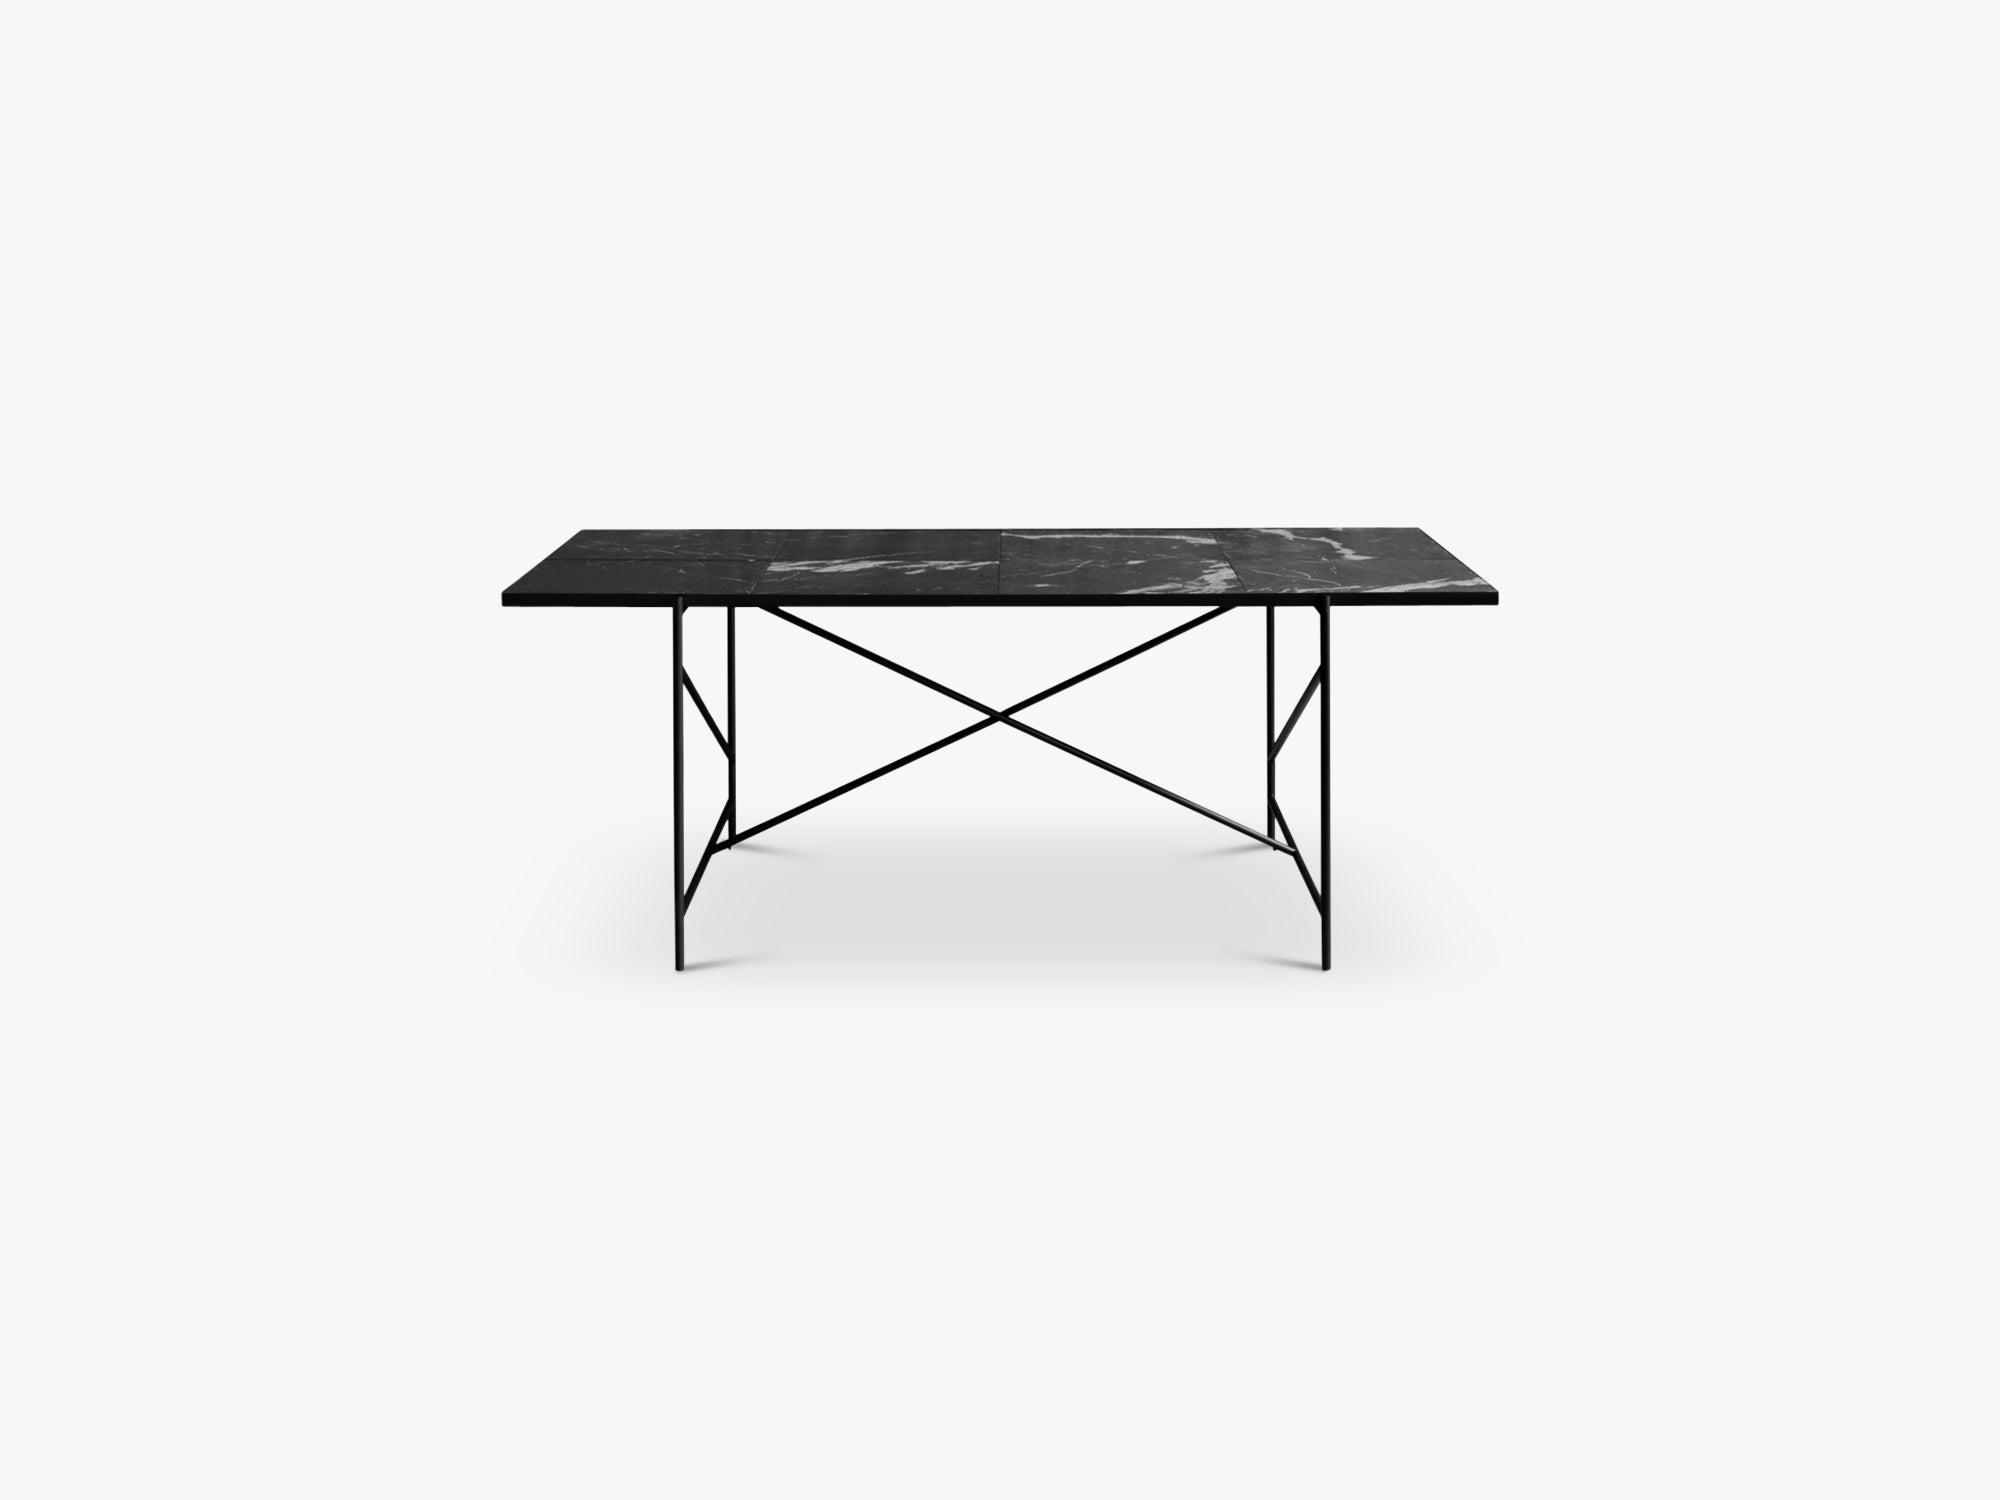 Dining Table, B185, Black fra Handvärk